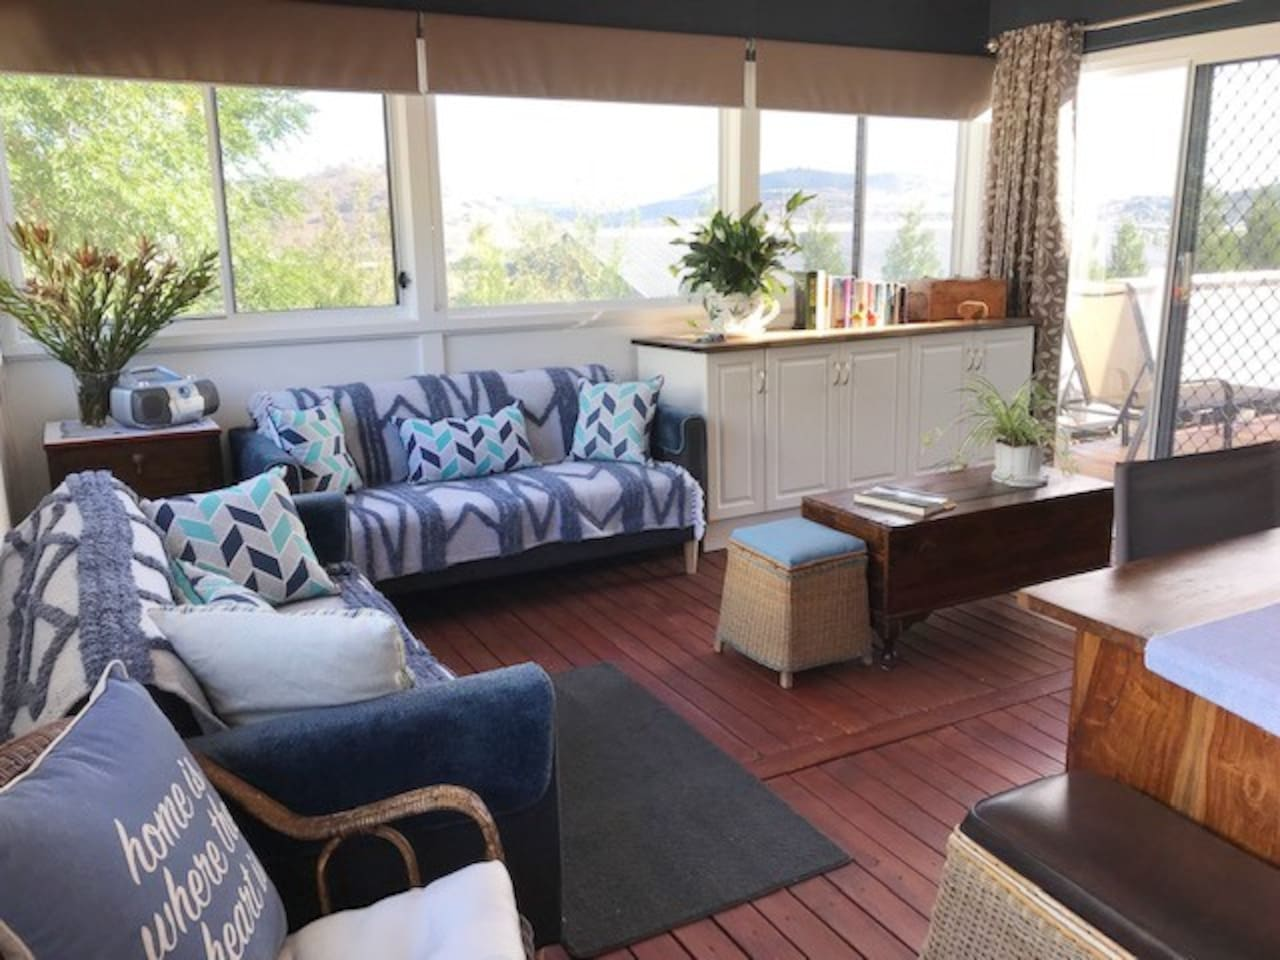 Enjoy the scenery from your private sitting/sunroom